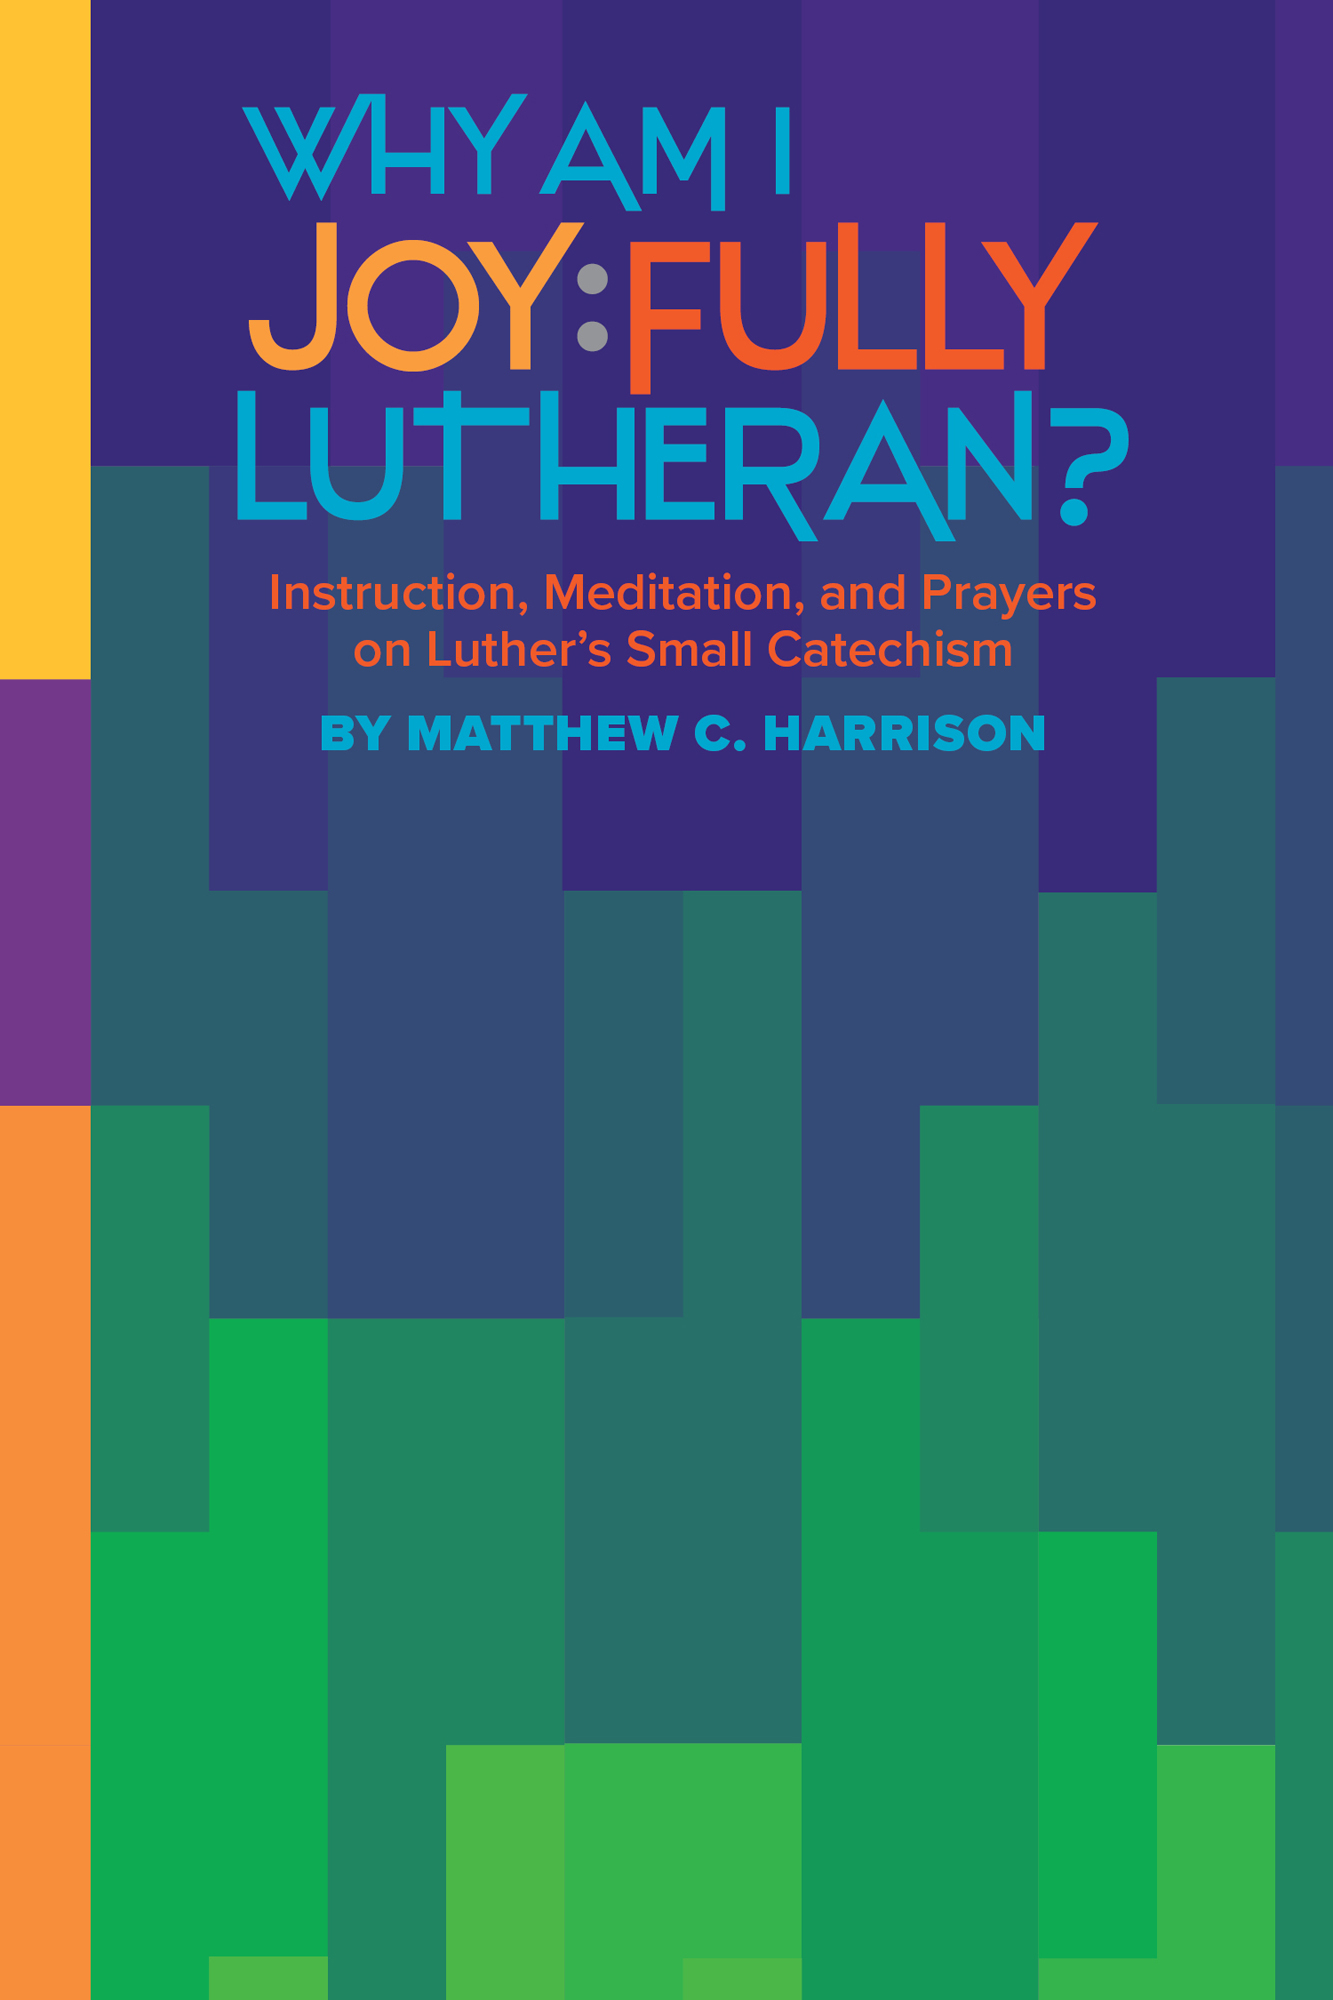 Cover for Why Am I Joy:fully Lutheran?